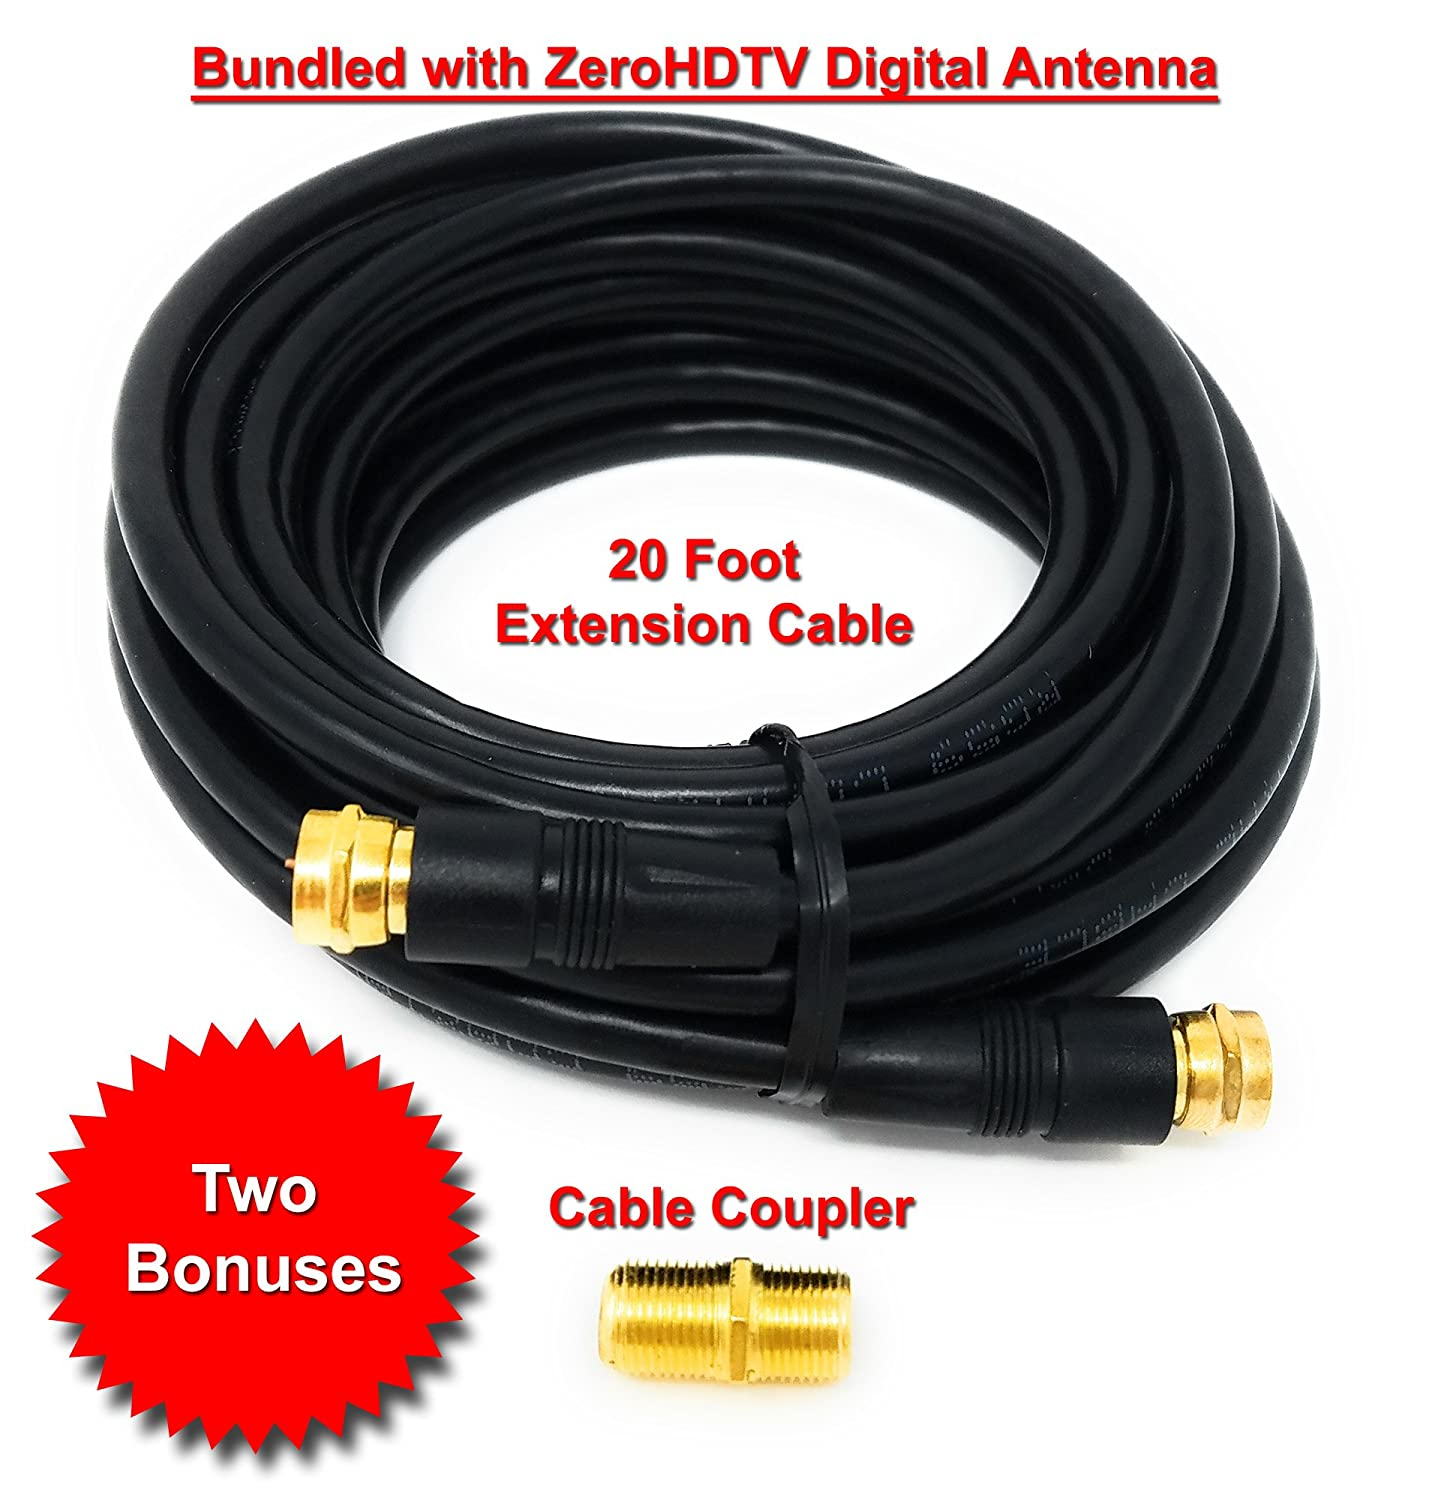 Amazon.com: ZeroHDTV Digital TV Antenna Bundle with 20 Extension Cable & Coupler. Long range reception - up to 120 mile range. Indoor outdoor use.